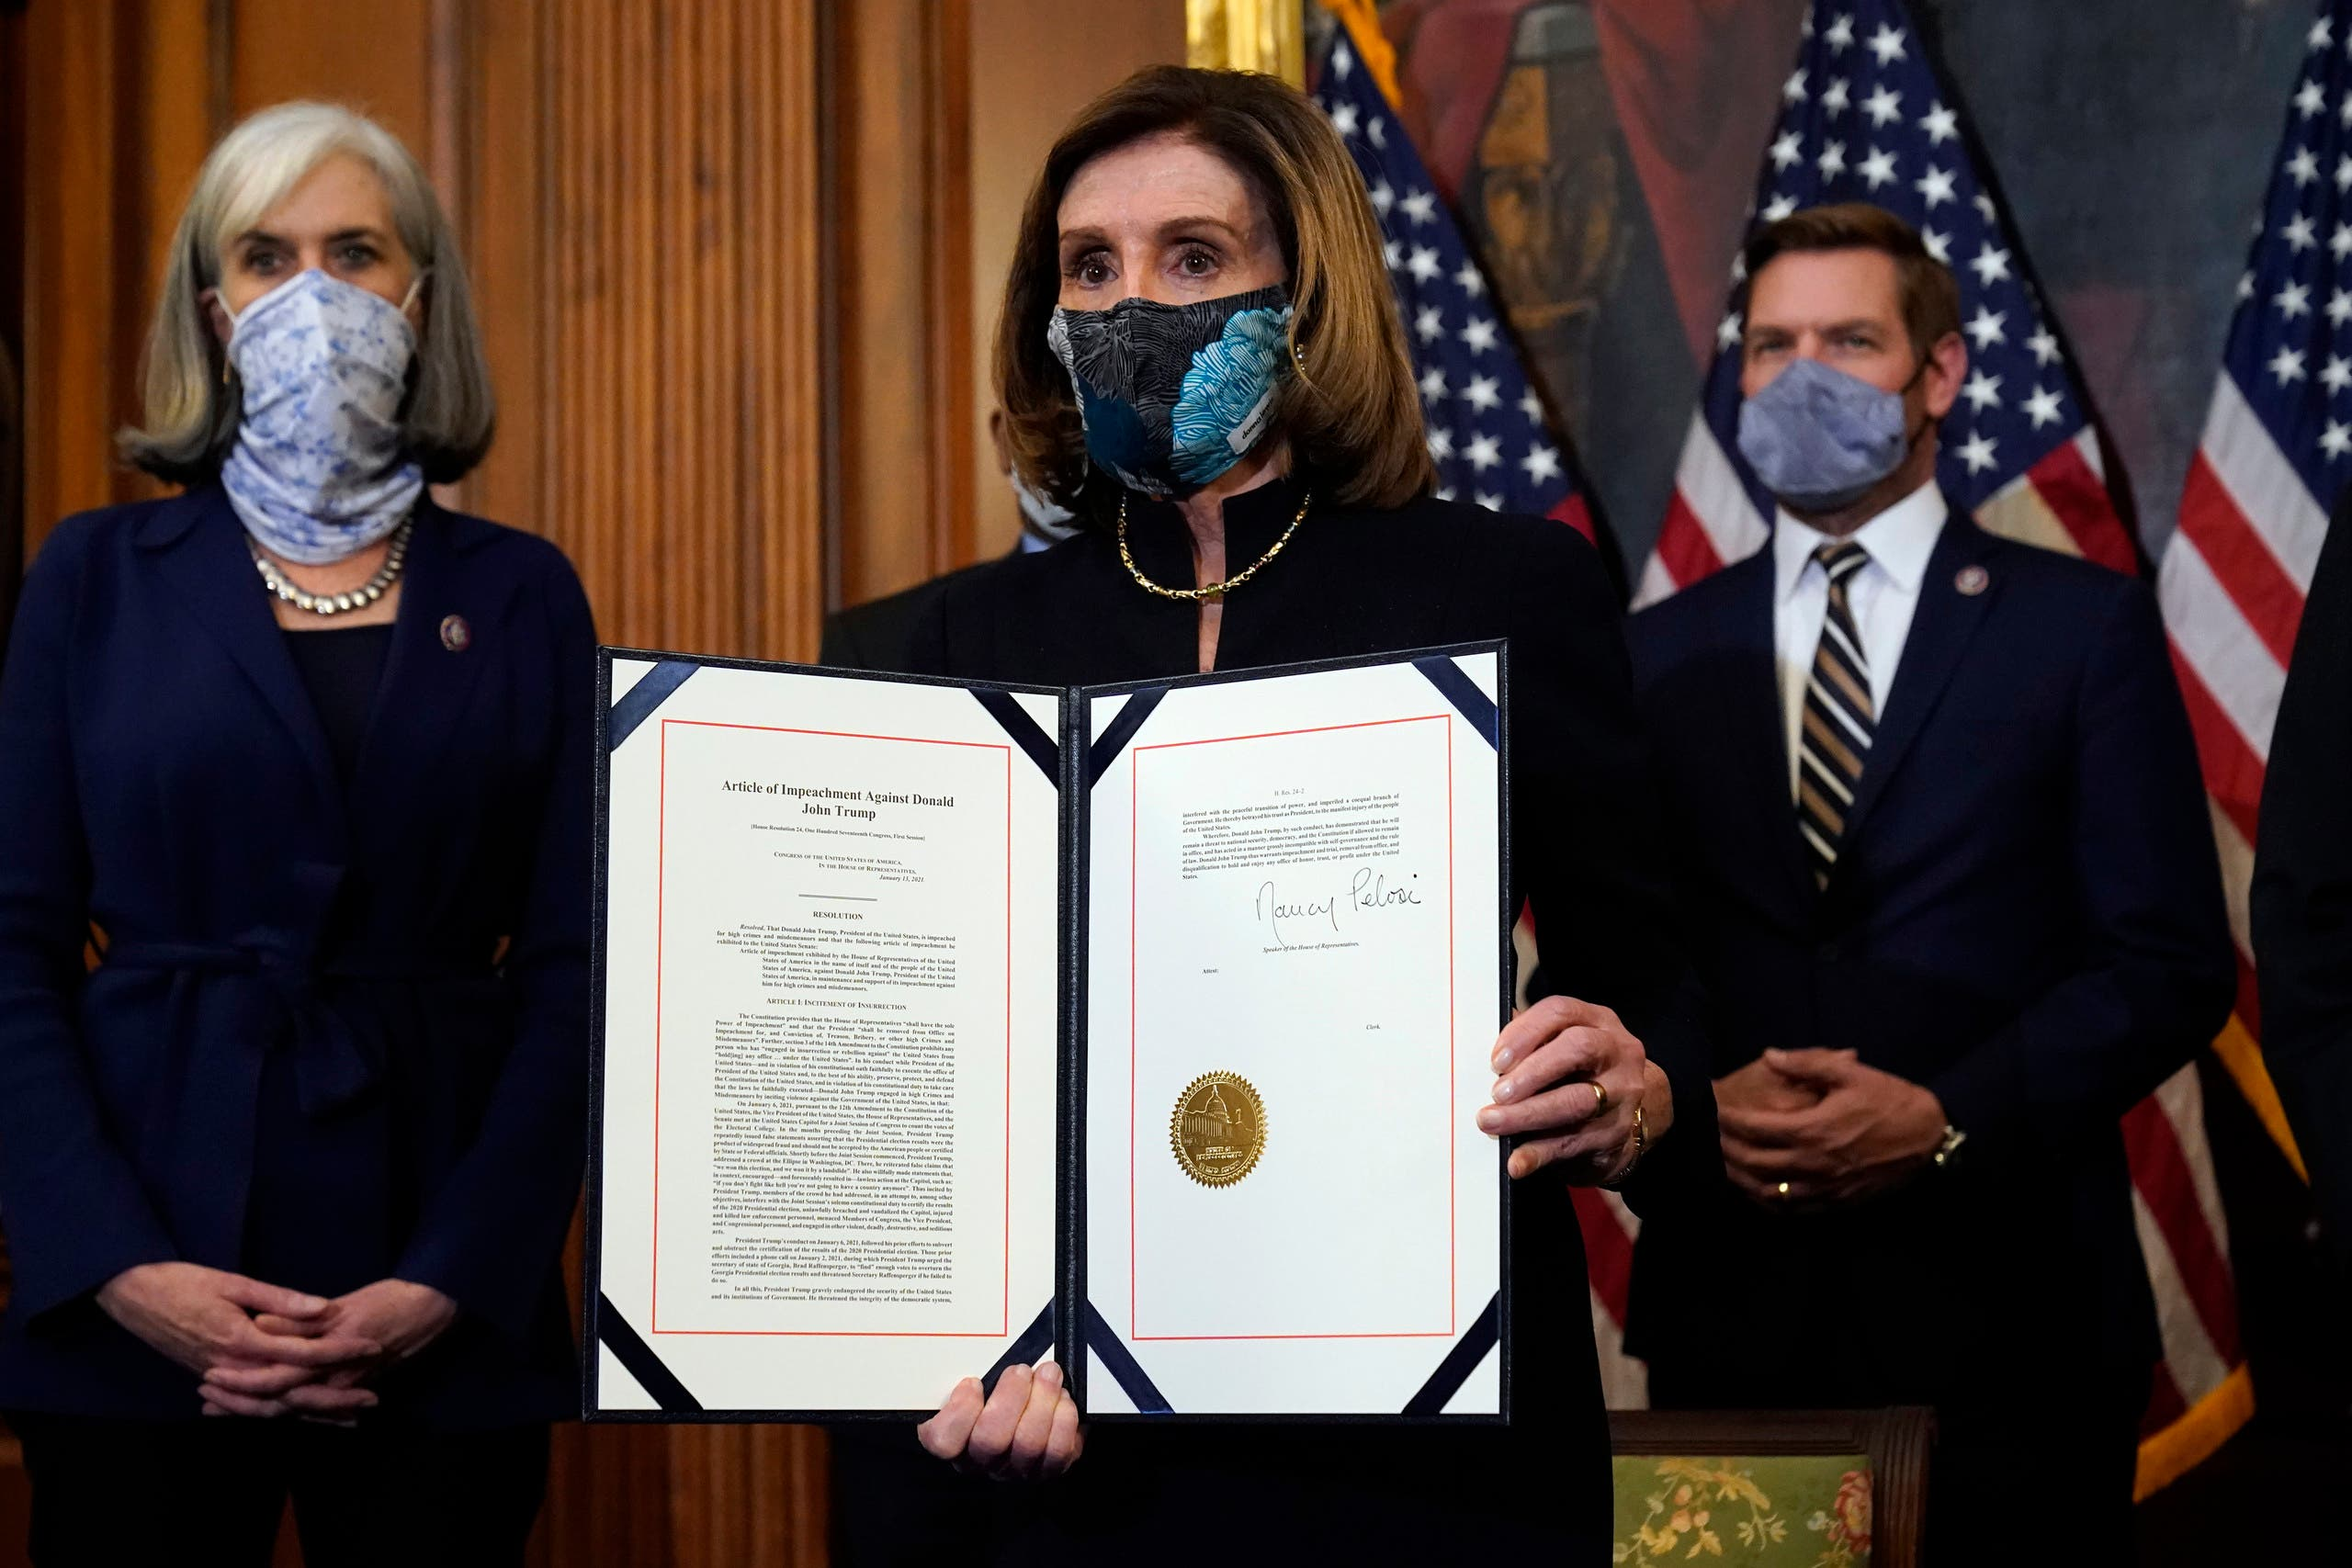 House Speaker Nancy Pelosi of Calif., displays the signed article of impeachment against President Donald Trump in an engrossment ceremony before transmission to the Senate for trial on Capitol Hill, in Washington, Wednesday, Jan. 13, 2021. (AP)